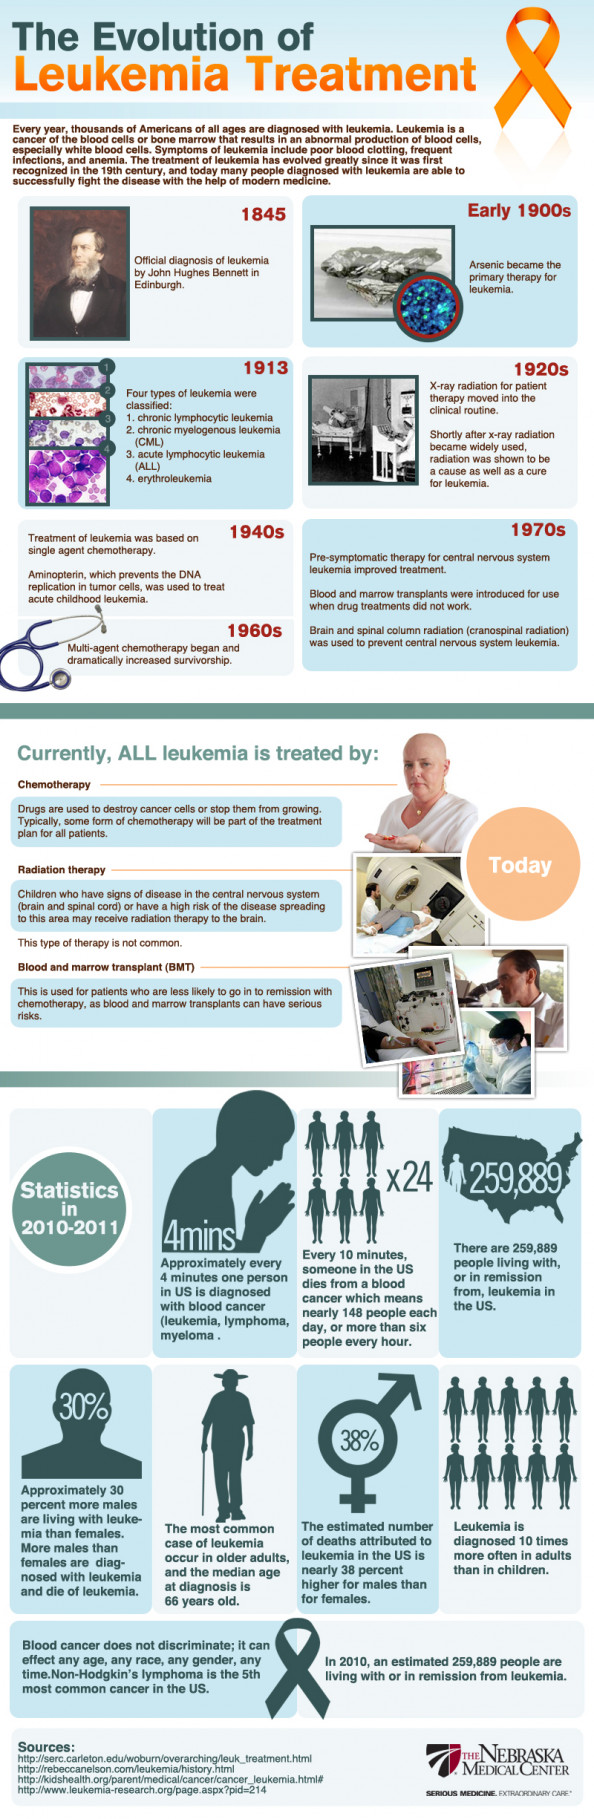 The Evolution of Leukemia Treatment Infographic